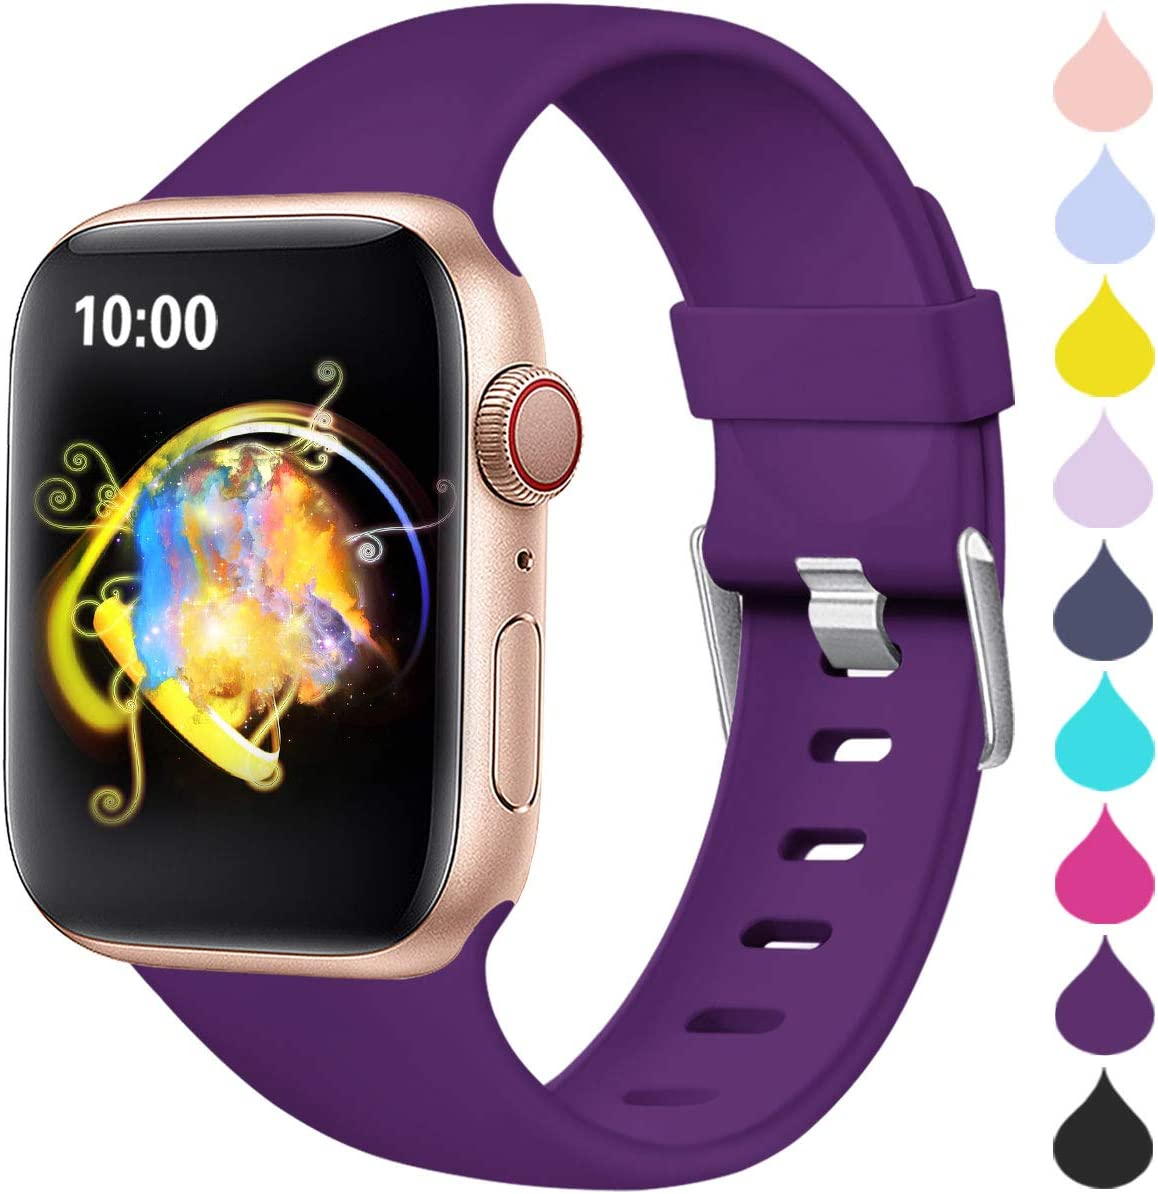 Haveda Sport Compatible for Apple Watch Band 40mm Series 6 Series 5 4, iWatch Bands 38mm Womens for Apple Watch SE, iwatch Series 3 2 1 Men, Waterproof Band for Apple Watch 5, Purple 38mm/40mm S/M